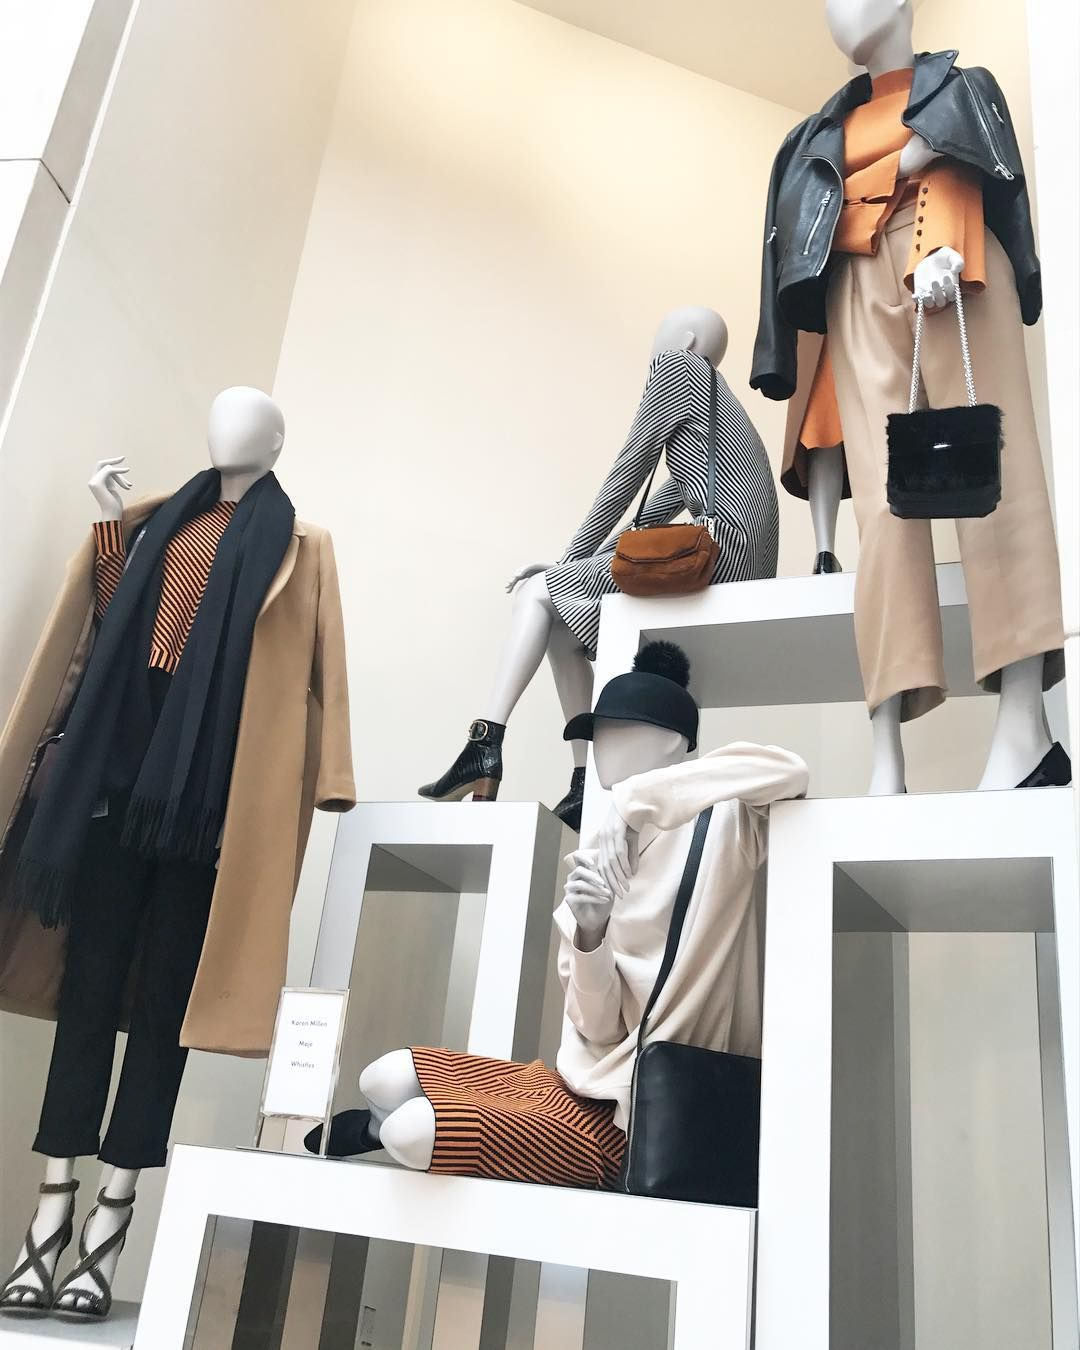 "BROWN THOMAS, Dublin, Ireland, ""Add warmth to your outfit with these Autumnal/Fall shades for the seasons ahead!"", pinned by Ton van der Veer"